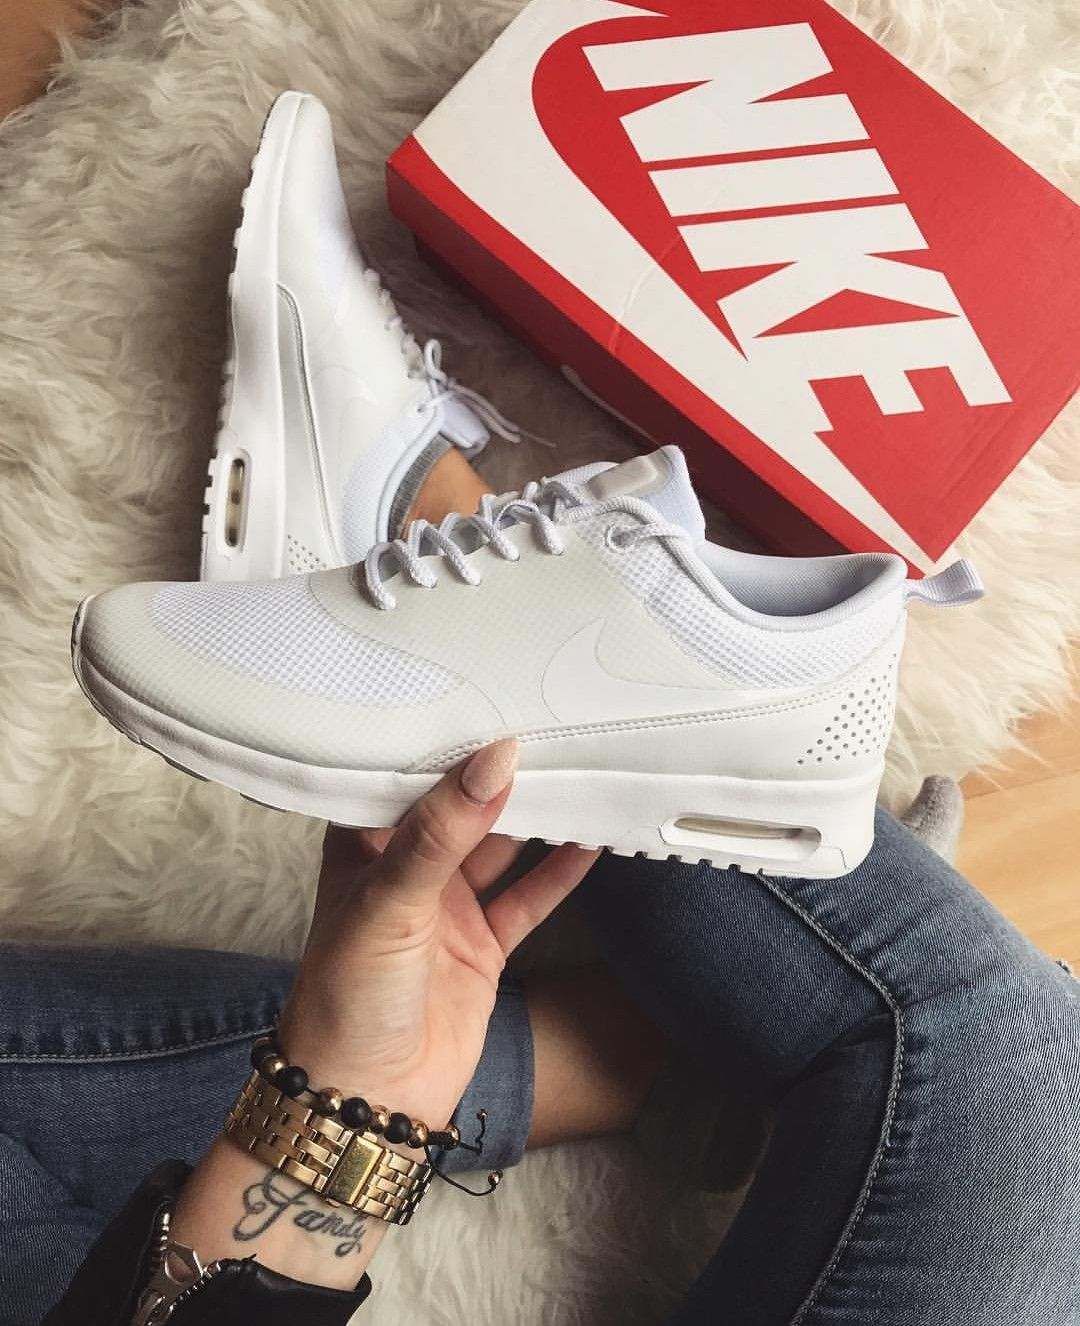 wholesale dealer 84c45 ee0bb Nike Air Max Thea in weiß white    Foto  lucie mat (Instagram)